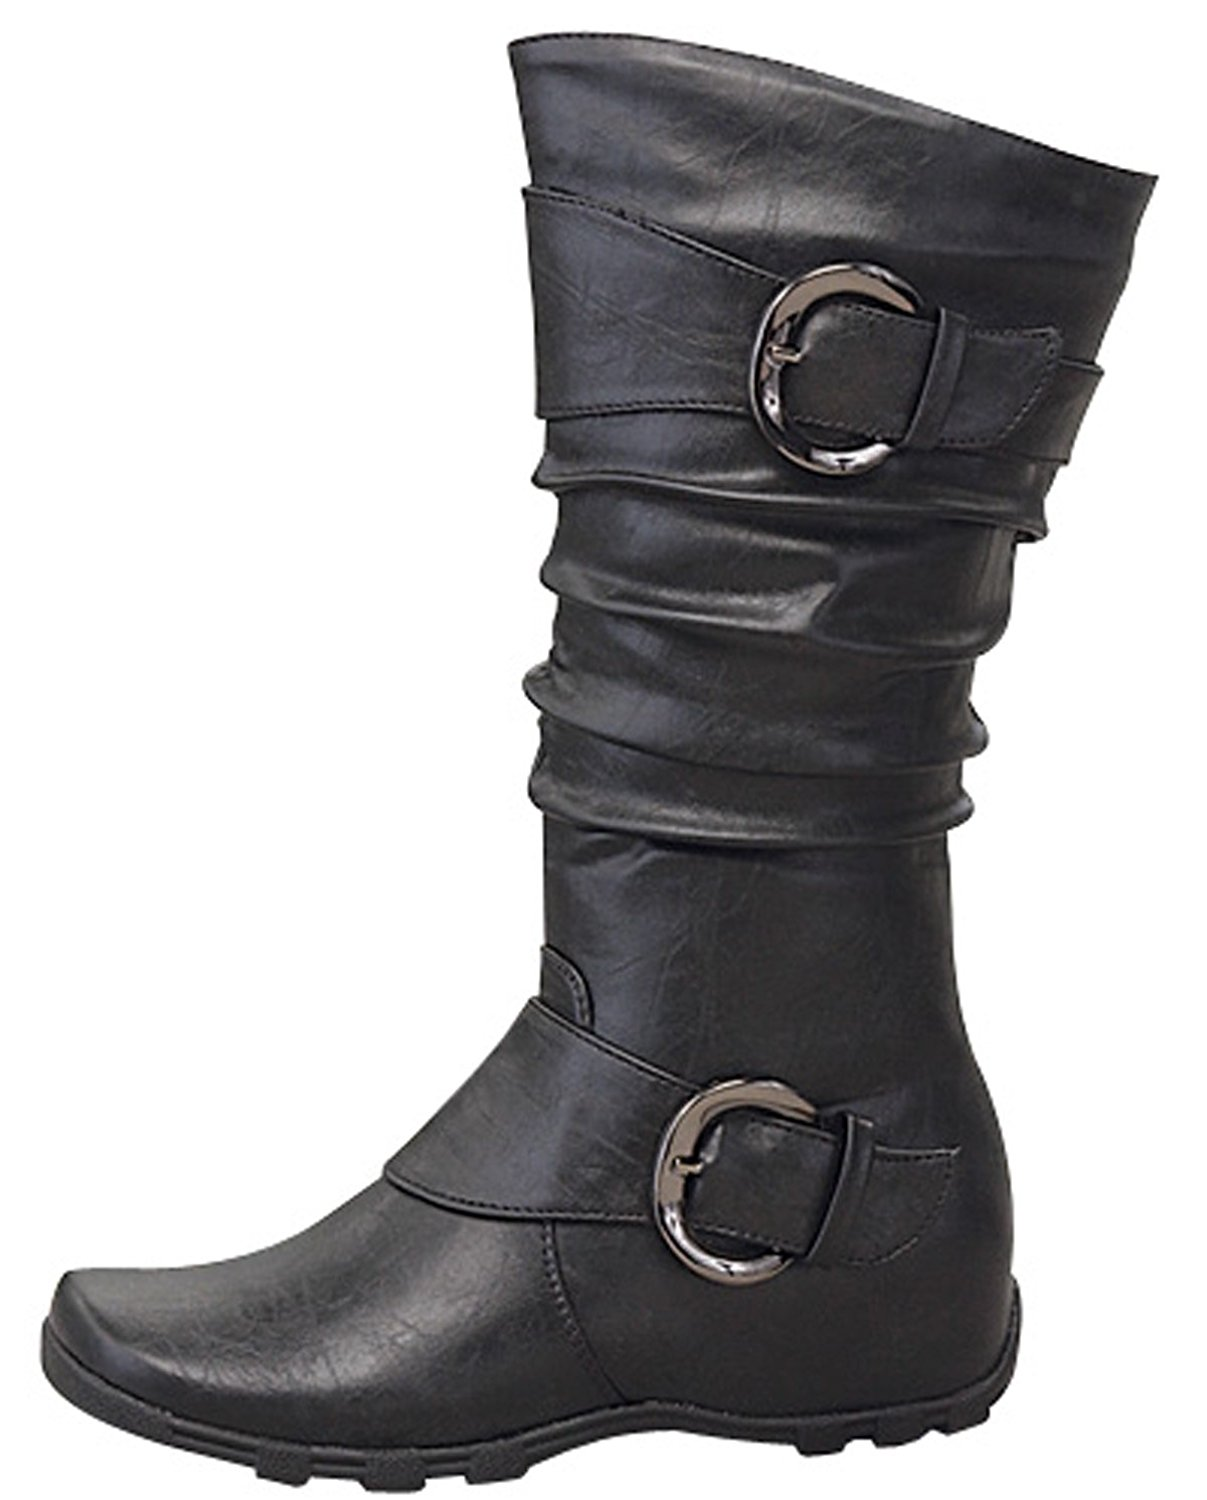 10445832f2df Get Quotations · Lucky Top Knee High Toddler girl Flat Dress Boots  Tmbest-83ks (Toddler 13